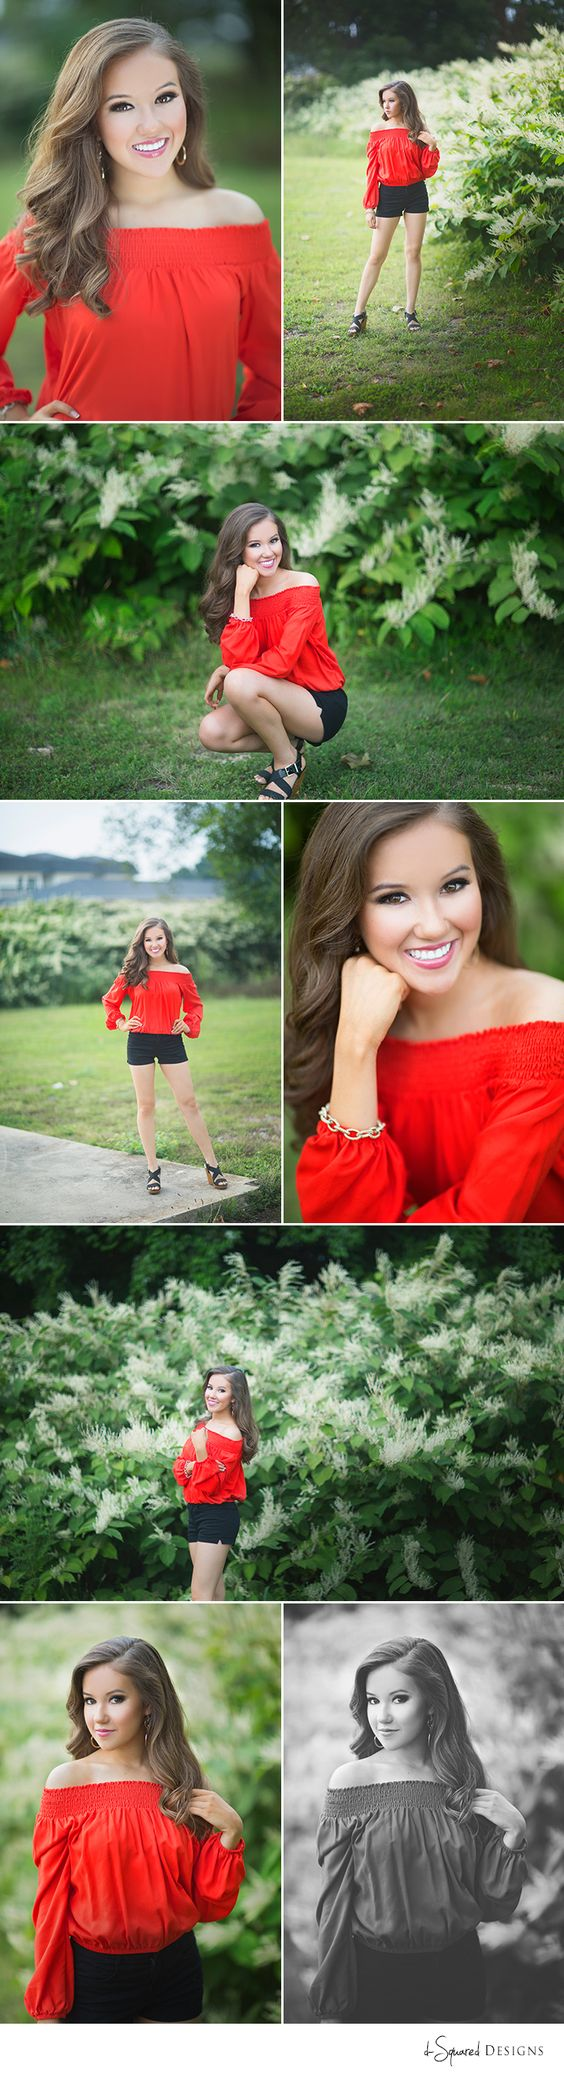 d-Squared Designs St. Louis, MO Senior Photography. Senior girl photography. St. Louis Senior photographer. Missouri senior photographer. Senior poses. Beautiful senior girl. Senior session. Senior girl inspiration. Miss Teen Missouri. Red and black. Greenery.